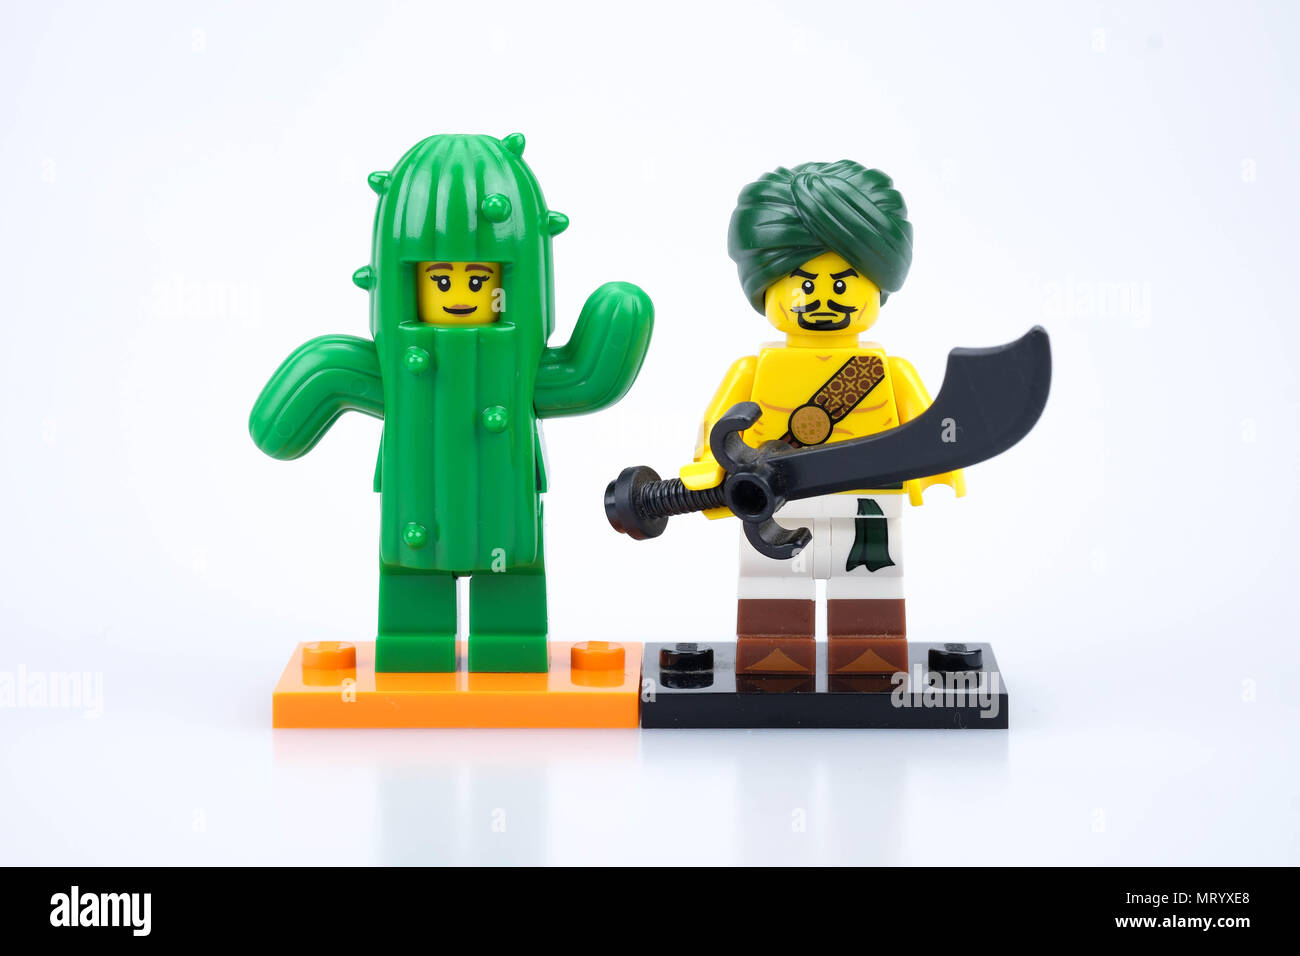 chiang mai, THAILAND - MAY 27, 2018: Lego mini figure toy, a privately held company based in Billund, Denmark. - Stock Image